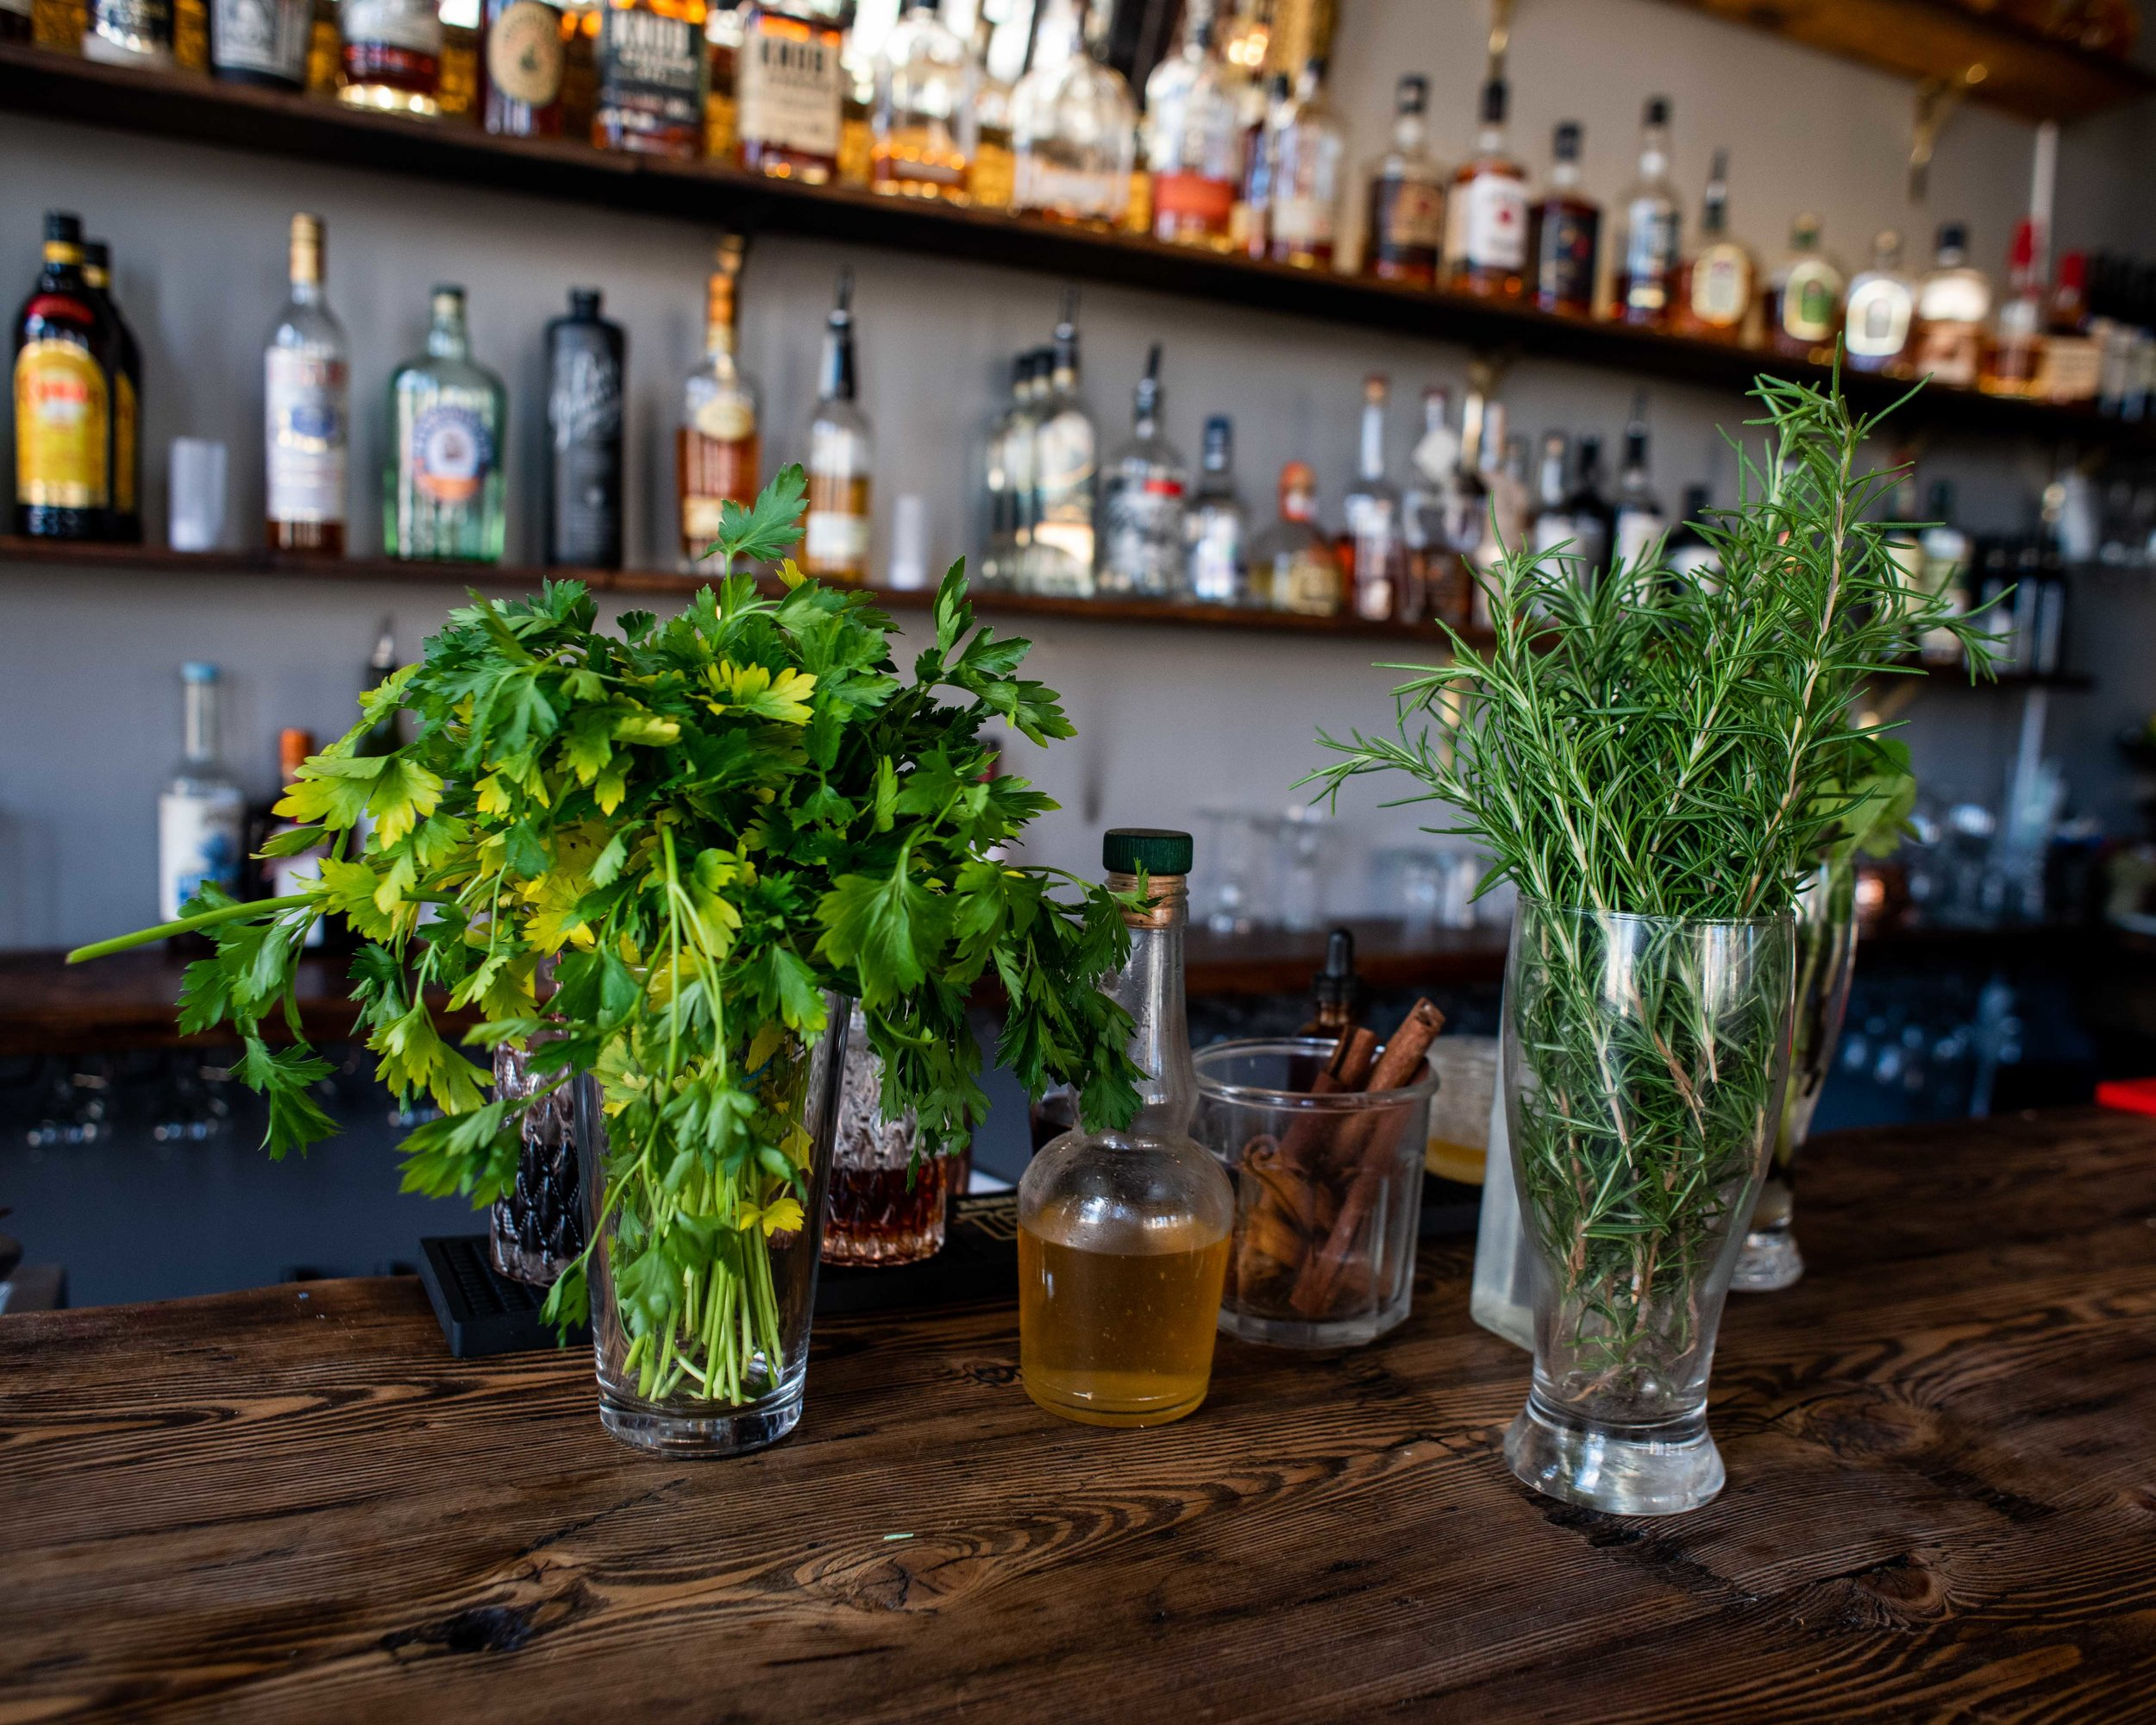 Fresh herbs for the drinks.